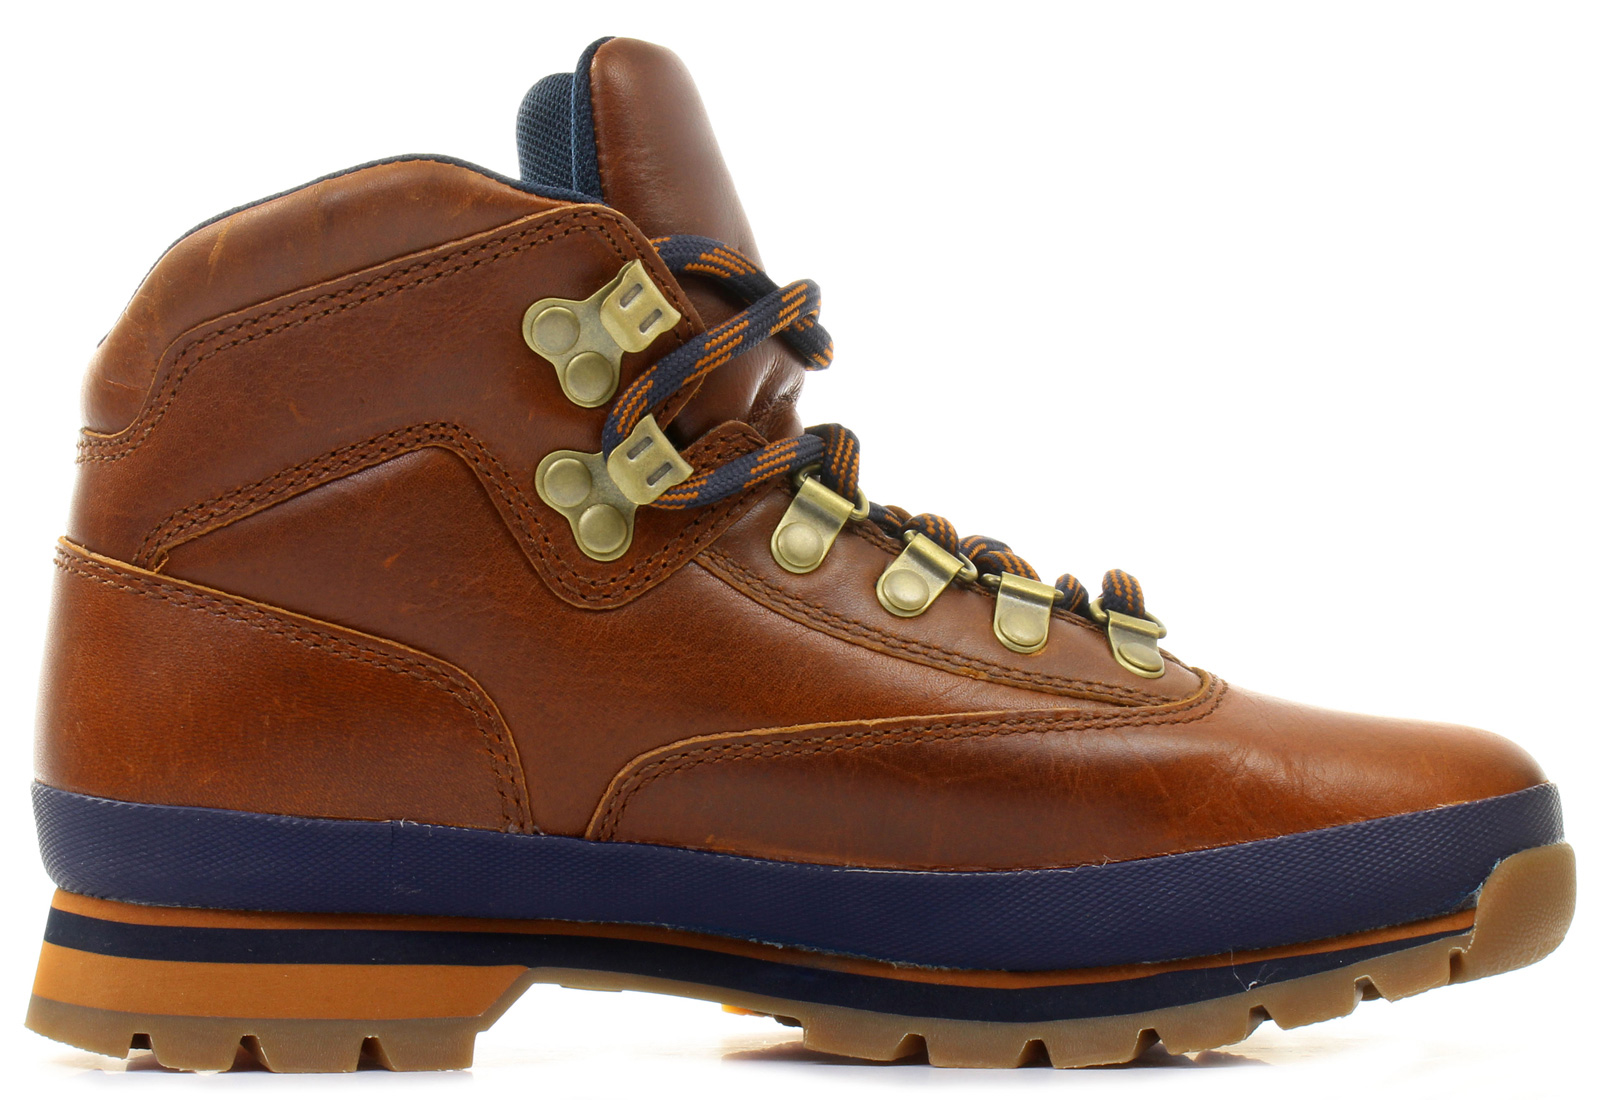 Timberland Boots Euro Hiker Leather 8250a Brn Online